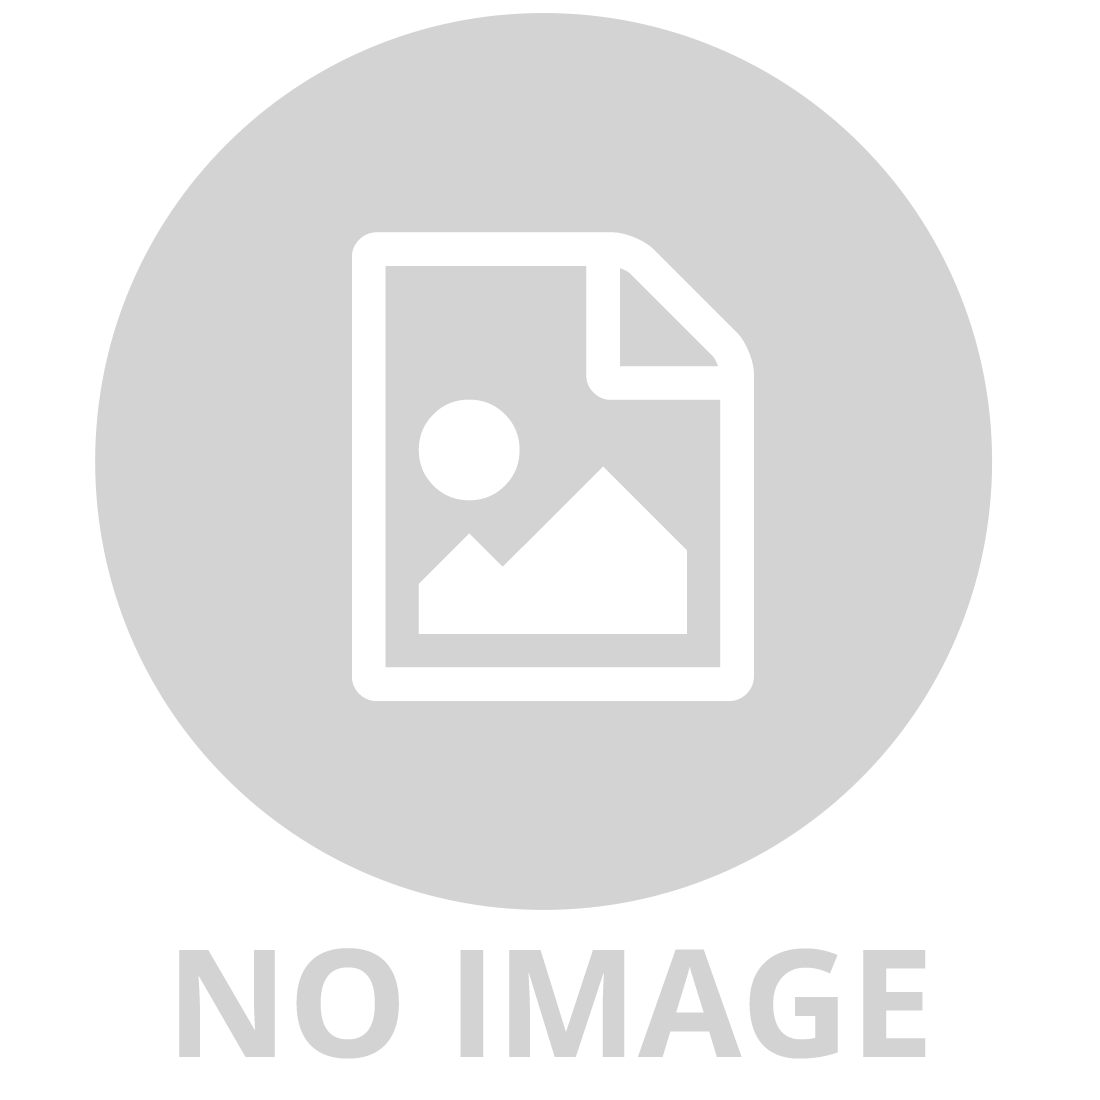 FISHER PRICE - SMART STAGES TABLET - WHITE